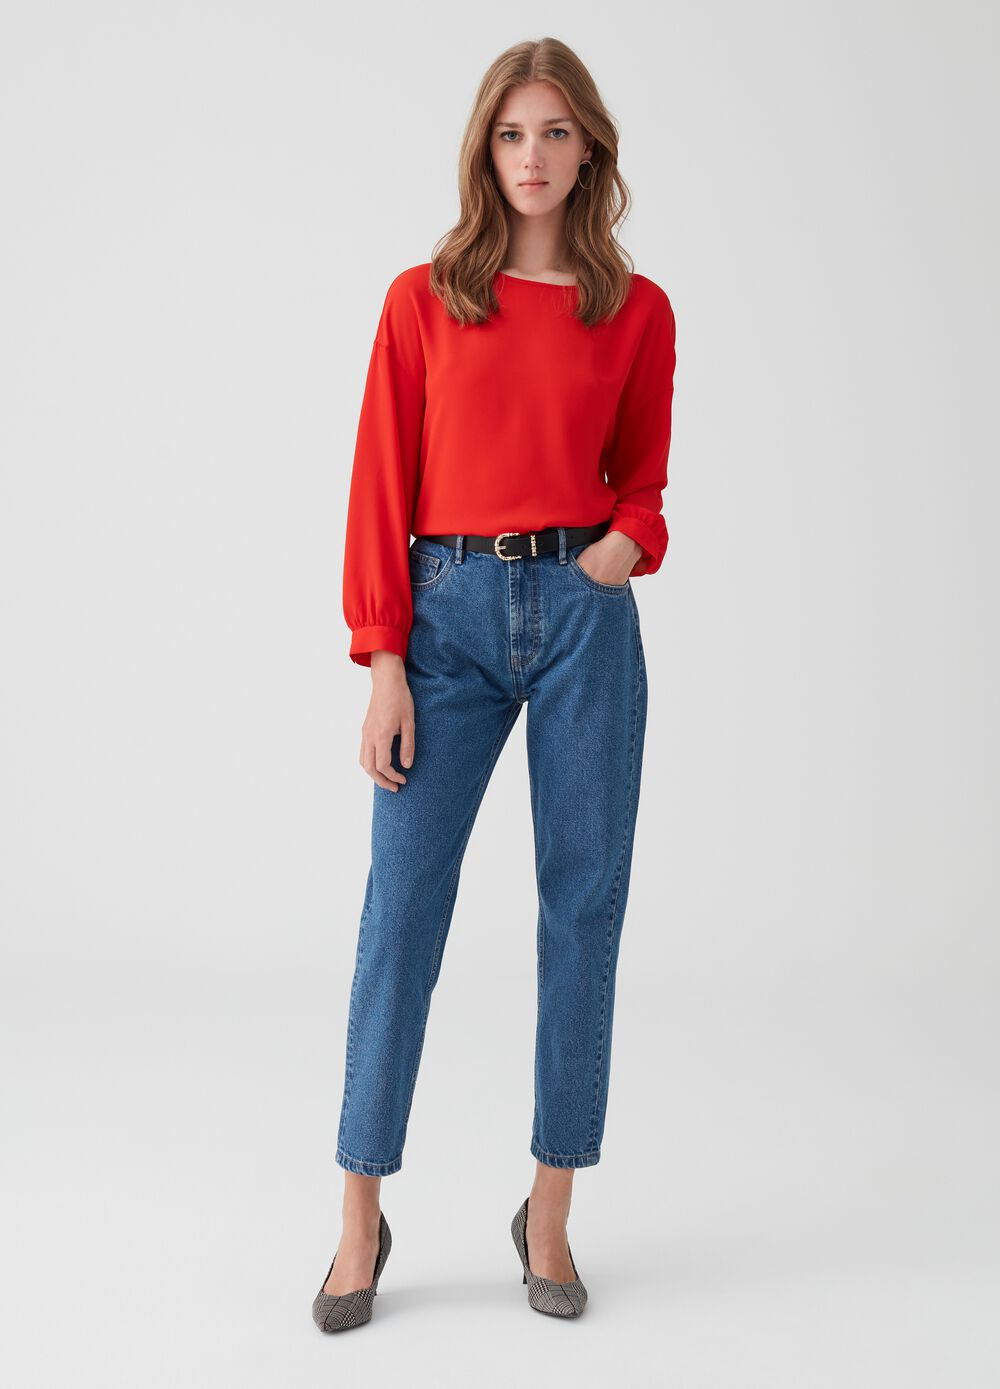 Long-sleeved crêpe blouse with bow on front